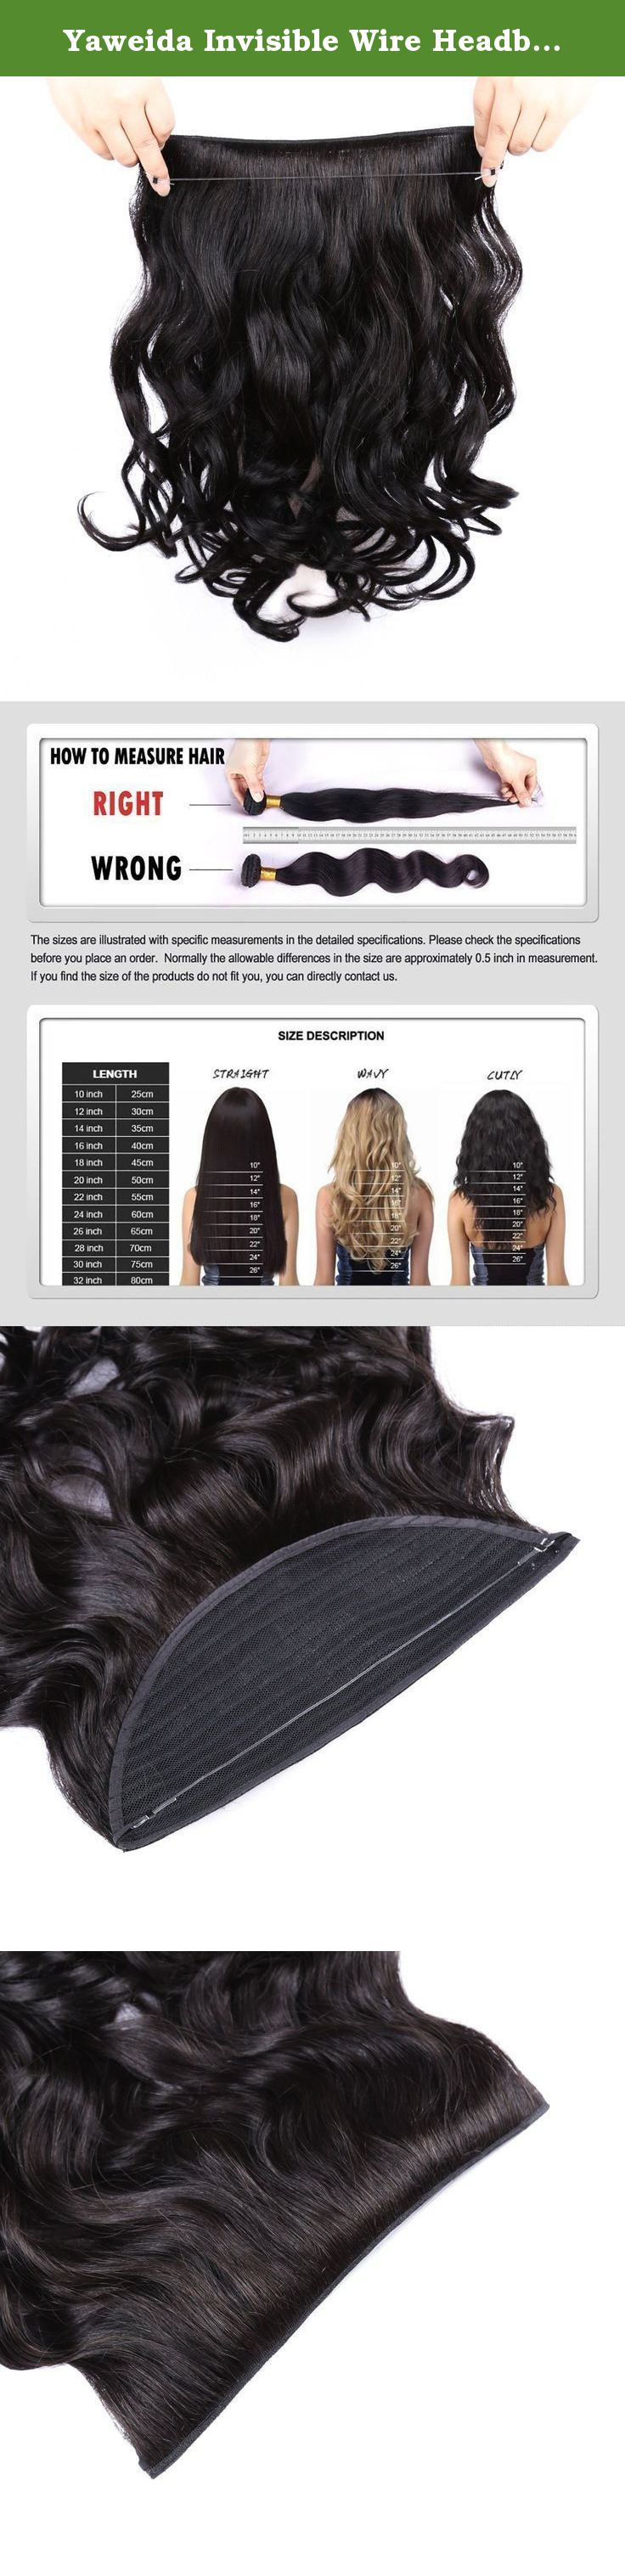 Yaweida Invisible Wire Headband Hair Extensions Unprocessed